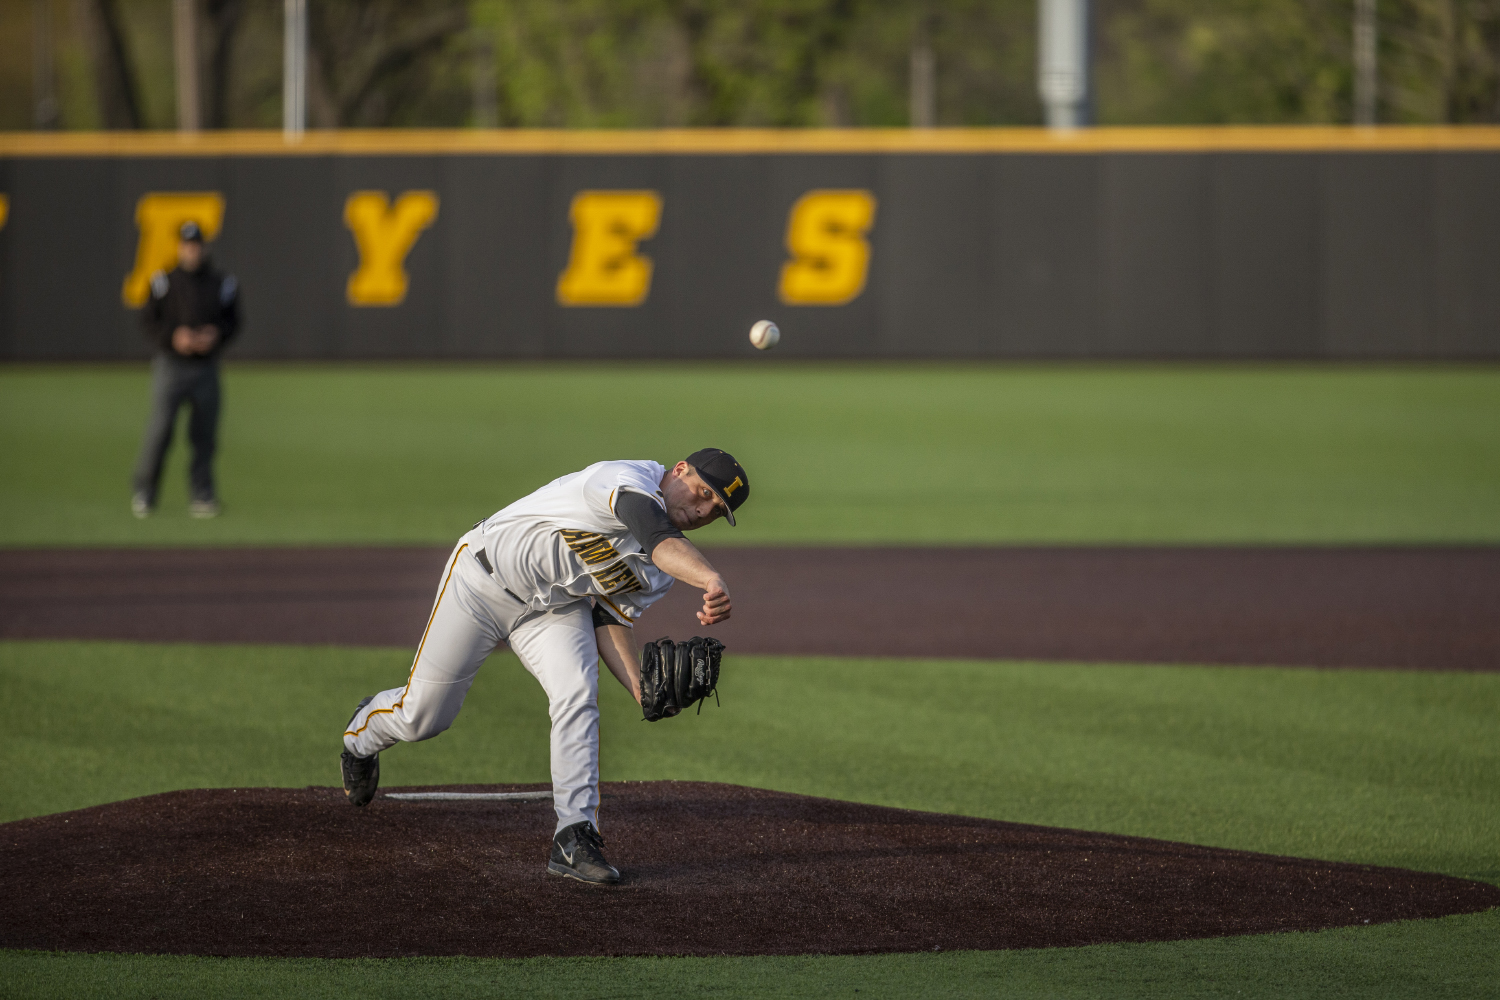 University of Iowa Pitcher Cole McDonald pitches during the baseball game at Duane Banks Stadium on Friday, May 3, 2019. The Hawkeyes beat the Eaters 6-3.